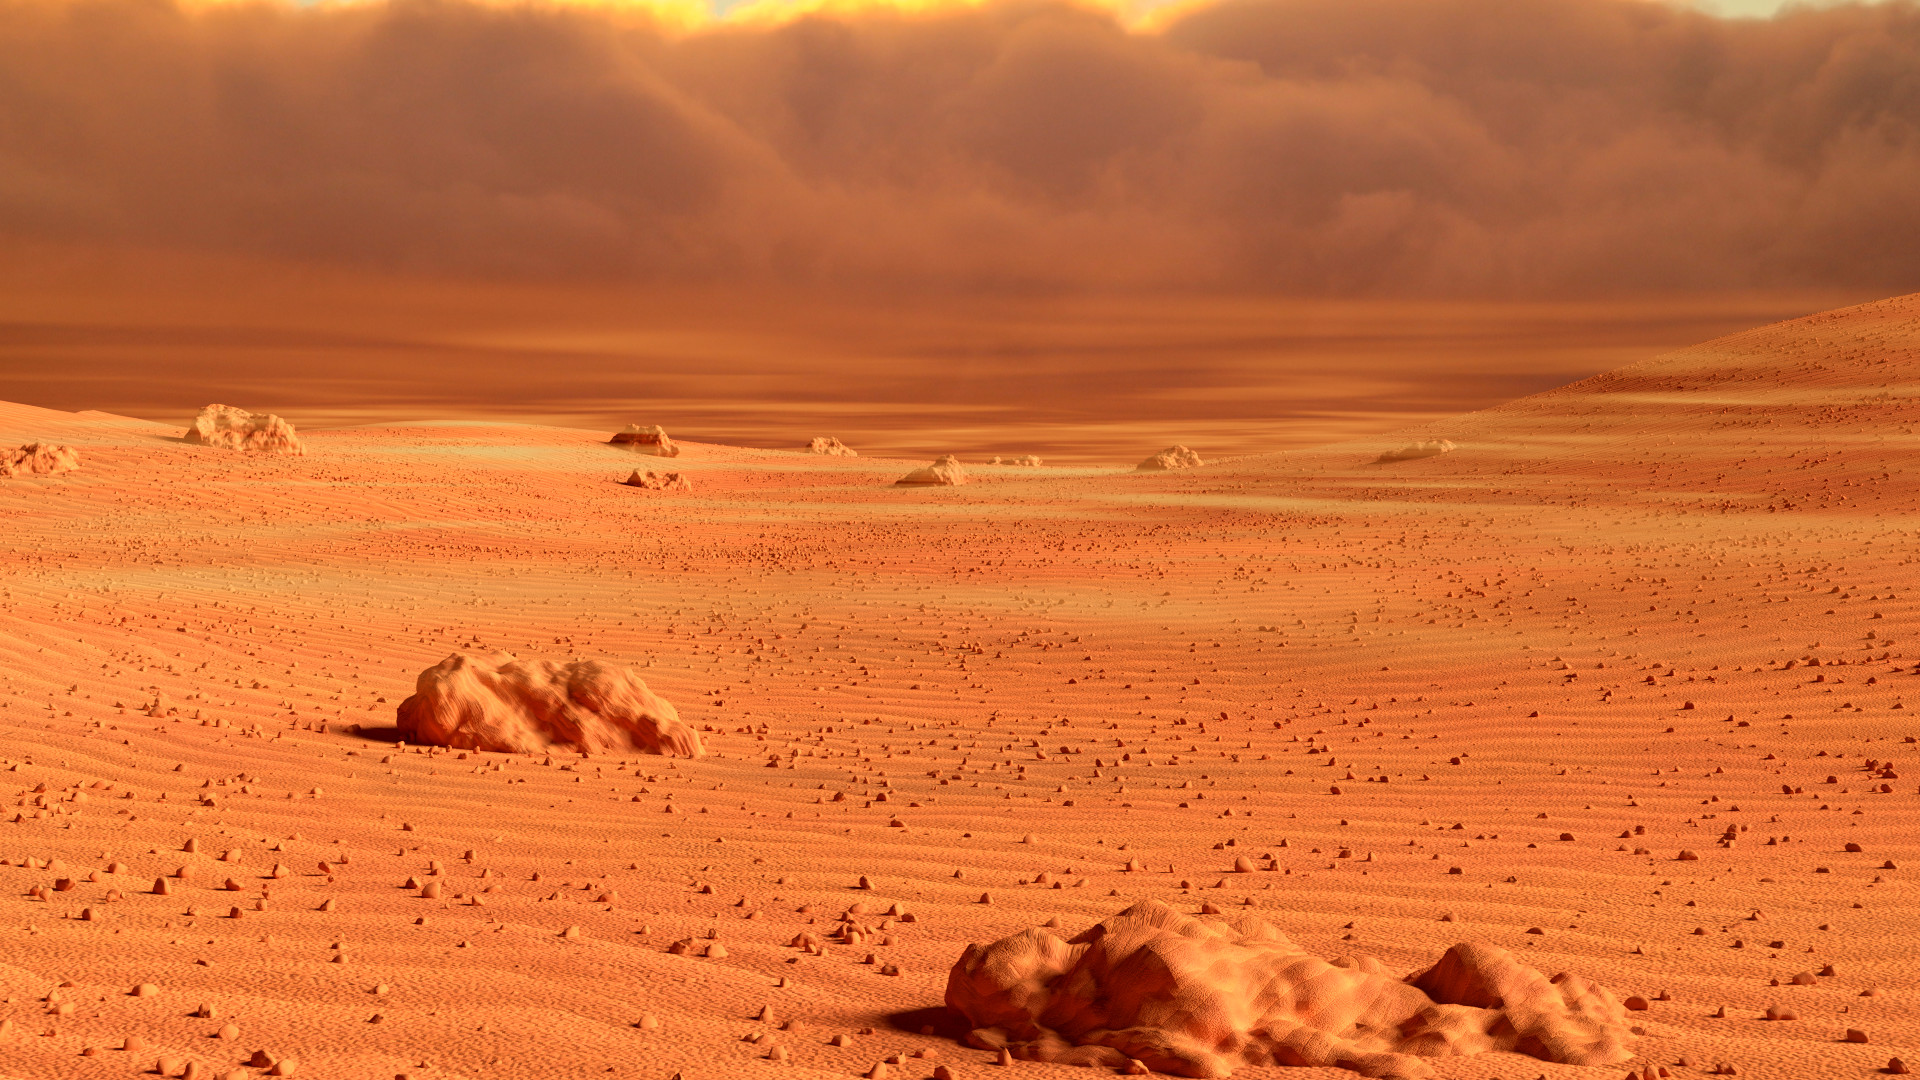 mars landscape background - HD 1920×1080